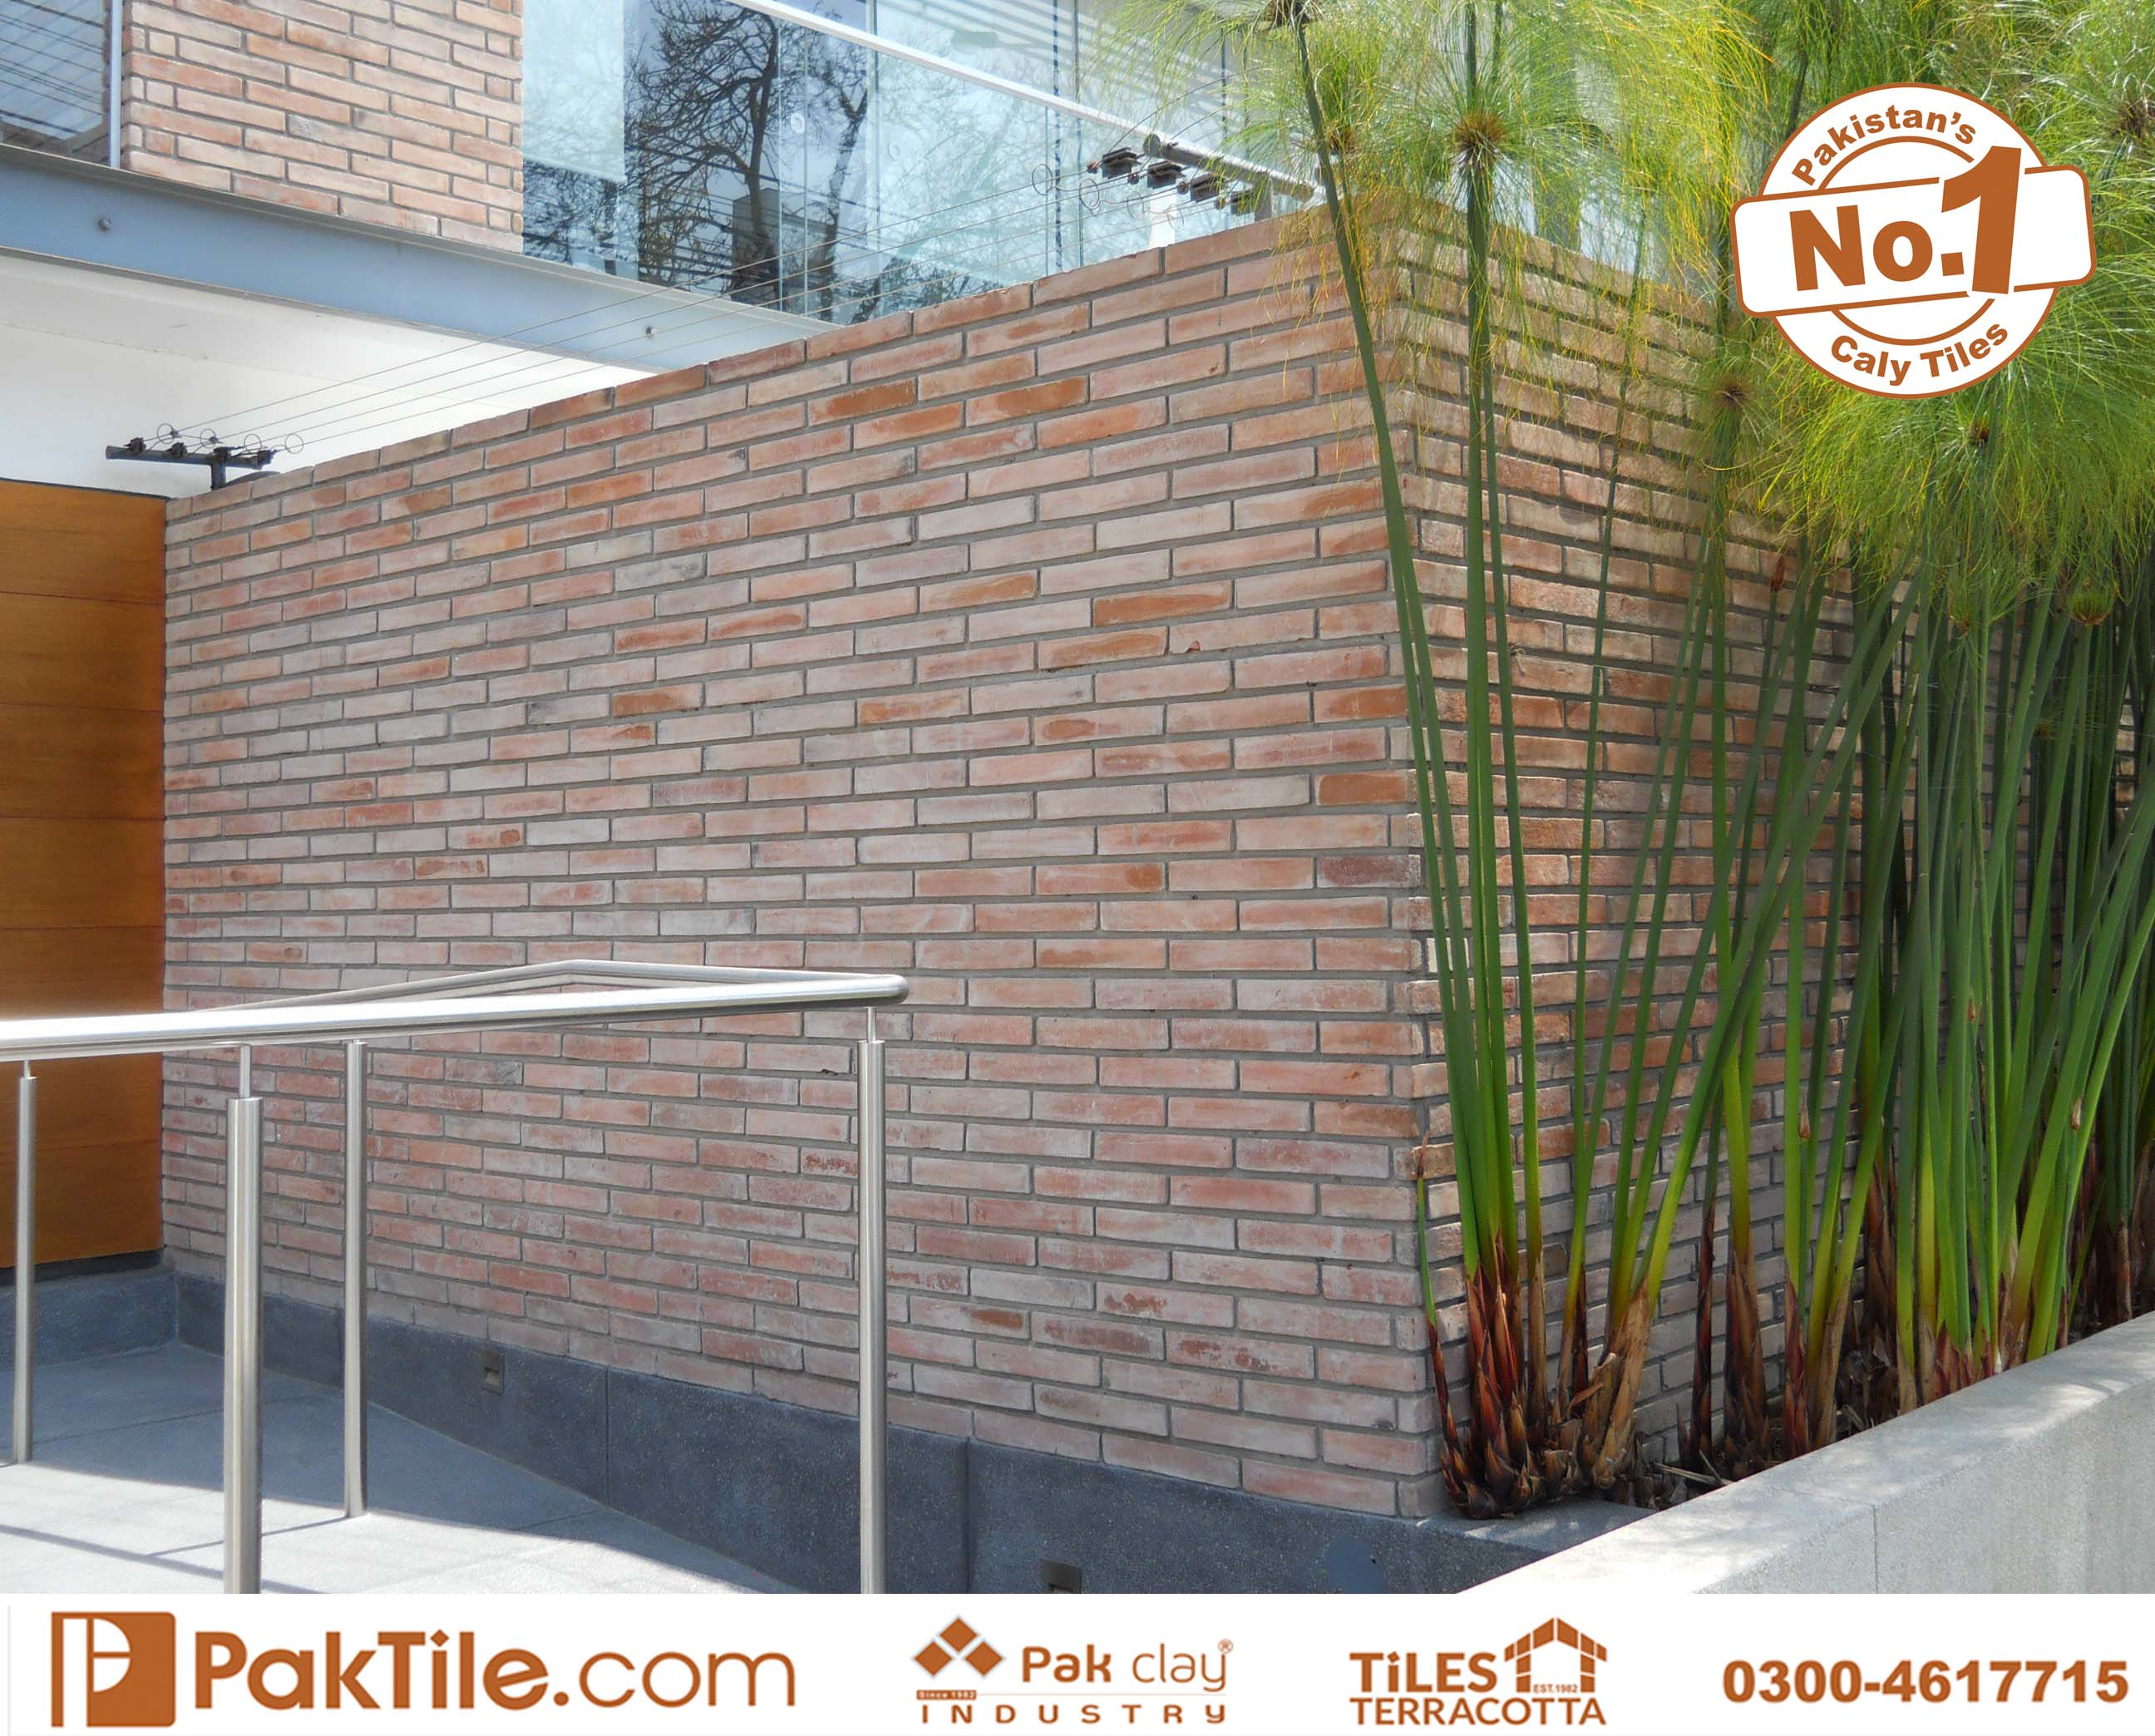 Exterior patios landscape area oyster split face wall red gas bricks tiles images lahore kpk peshawar pakistan